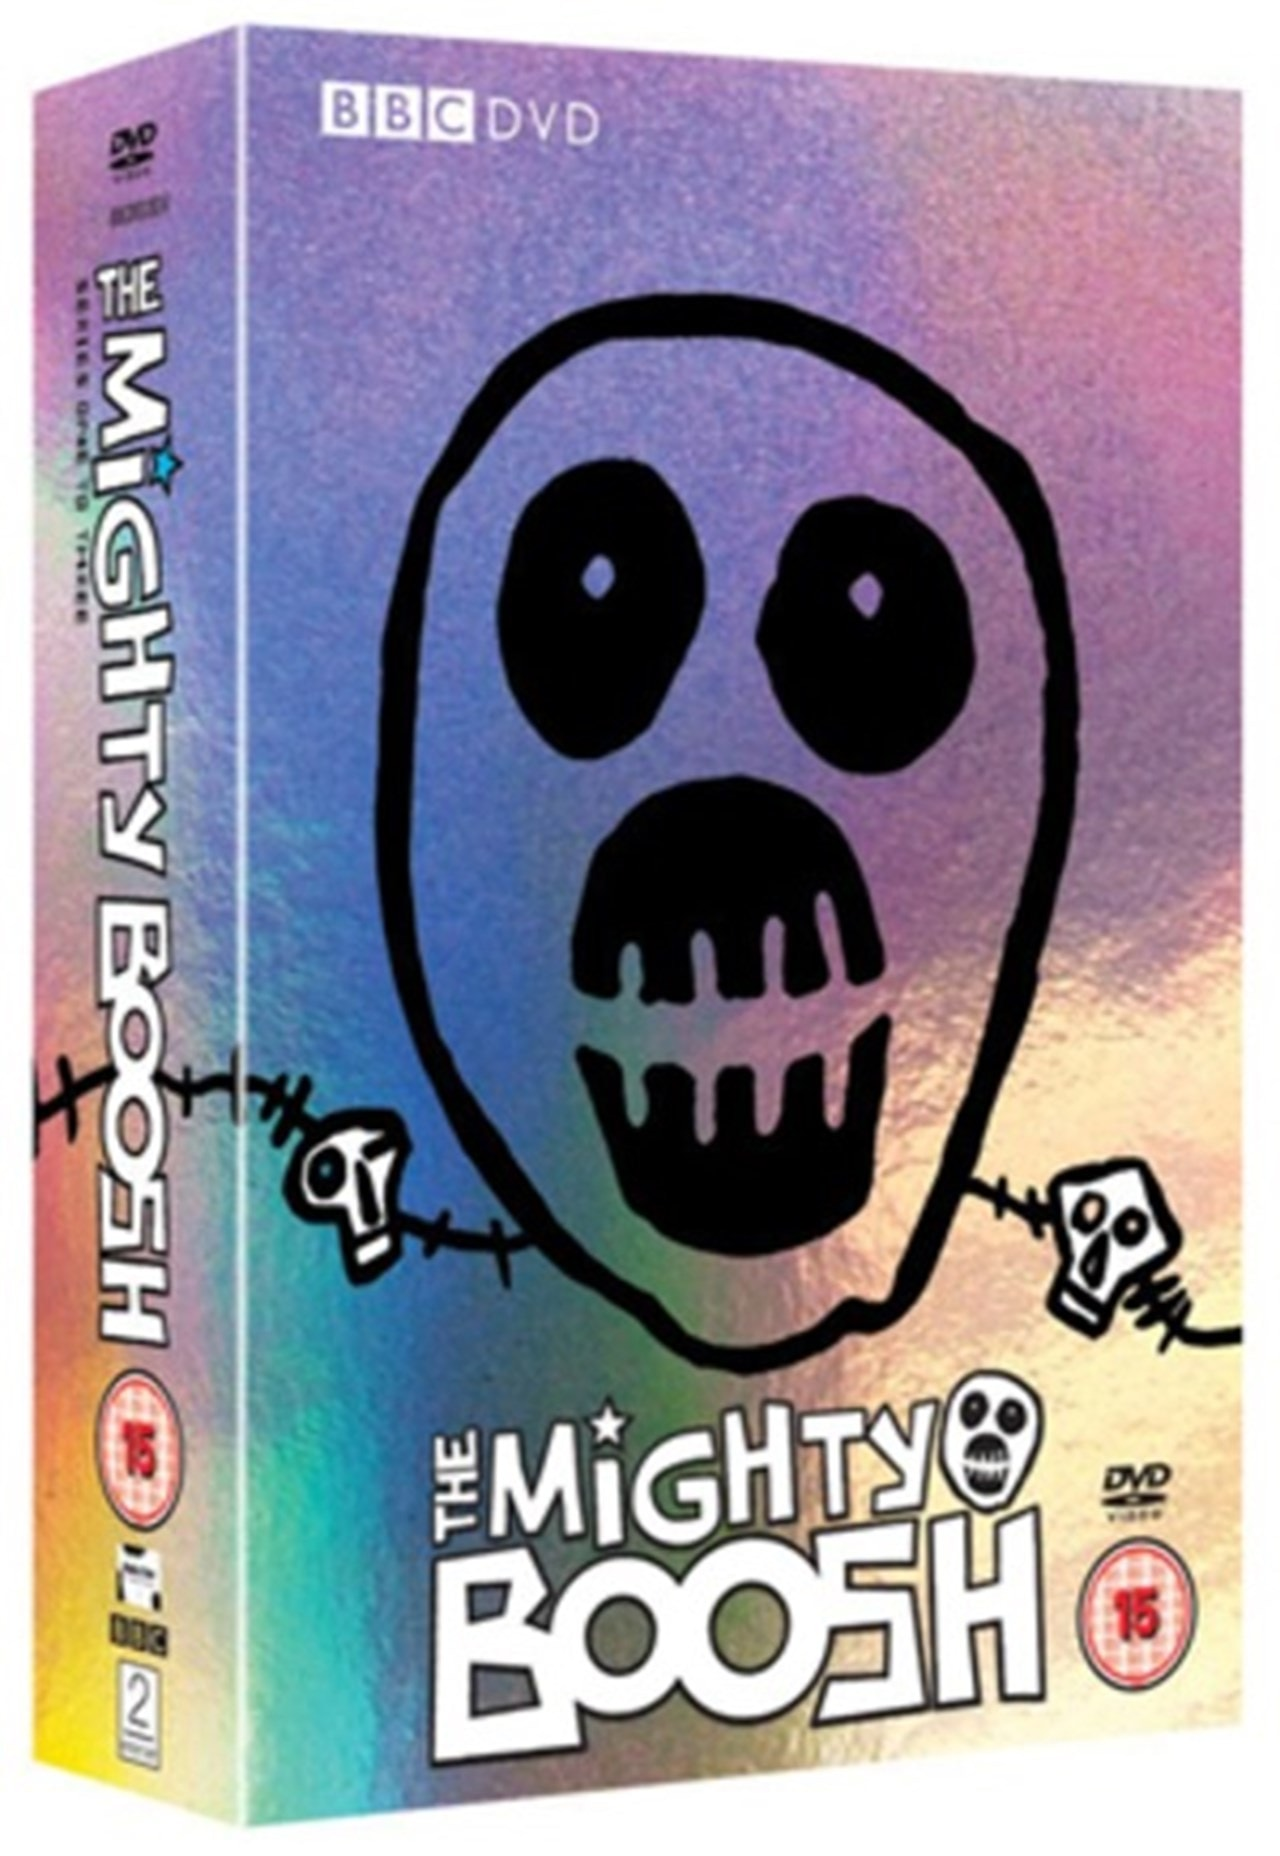 The Mighty Boosh: Series 1-3 Collection - 1